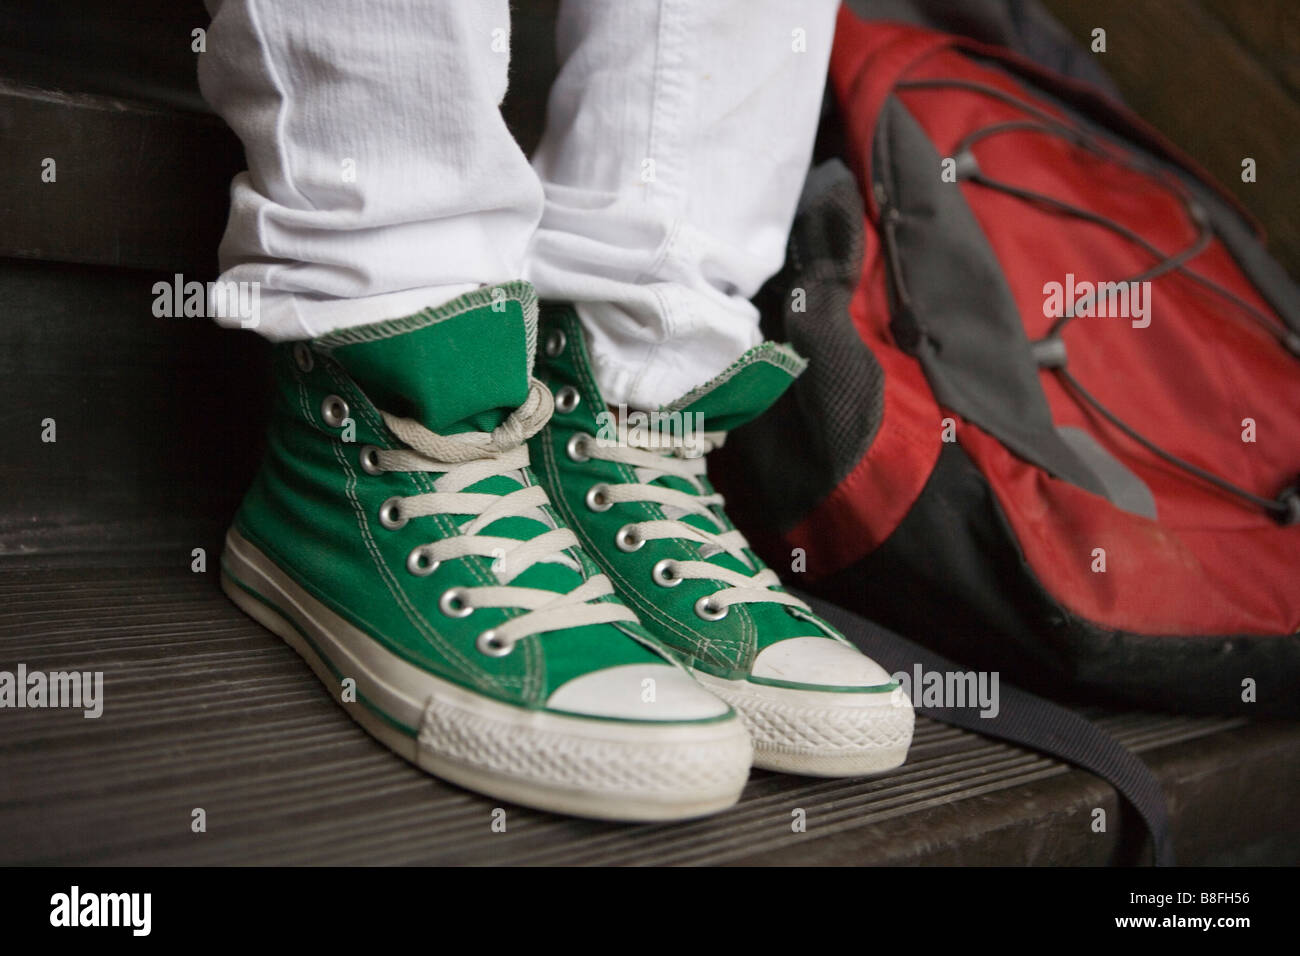 close up of green high top sneakers worn by teenager - Stock Image